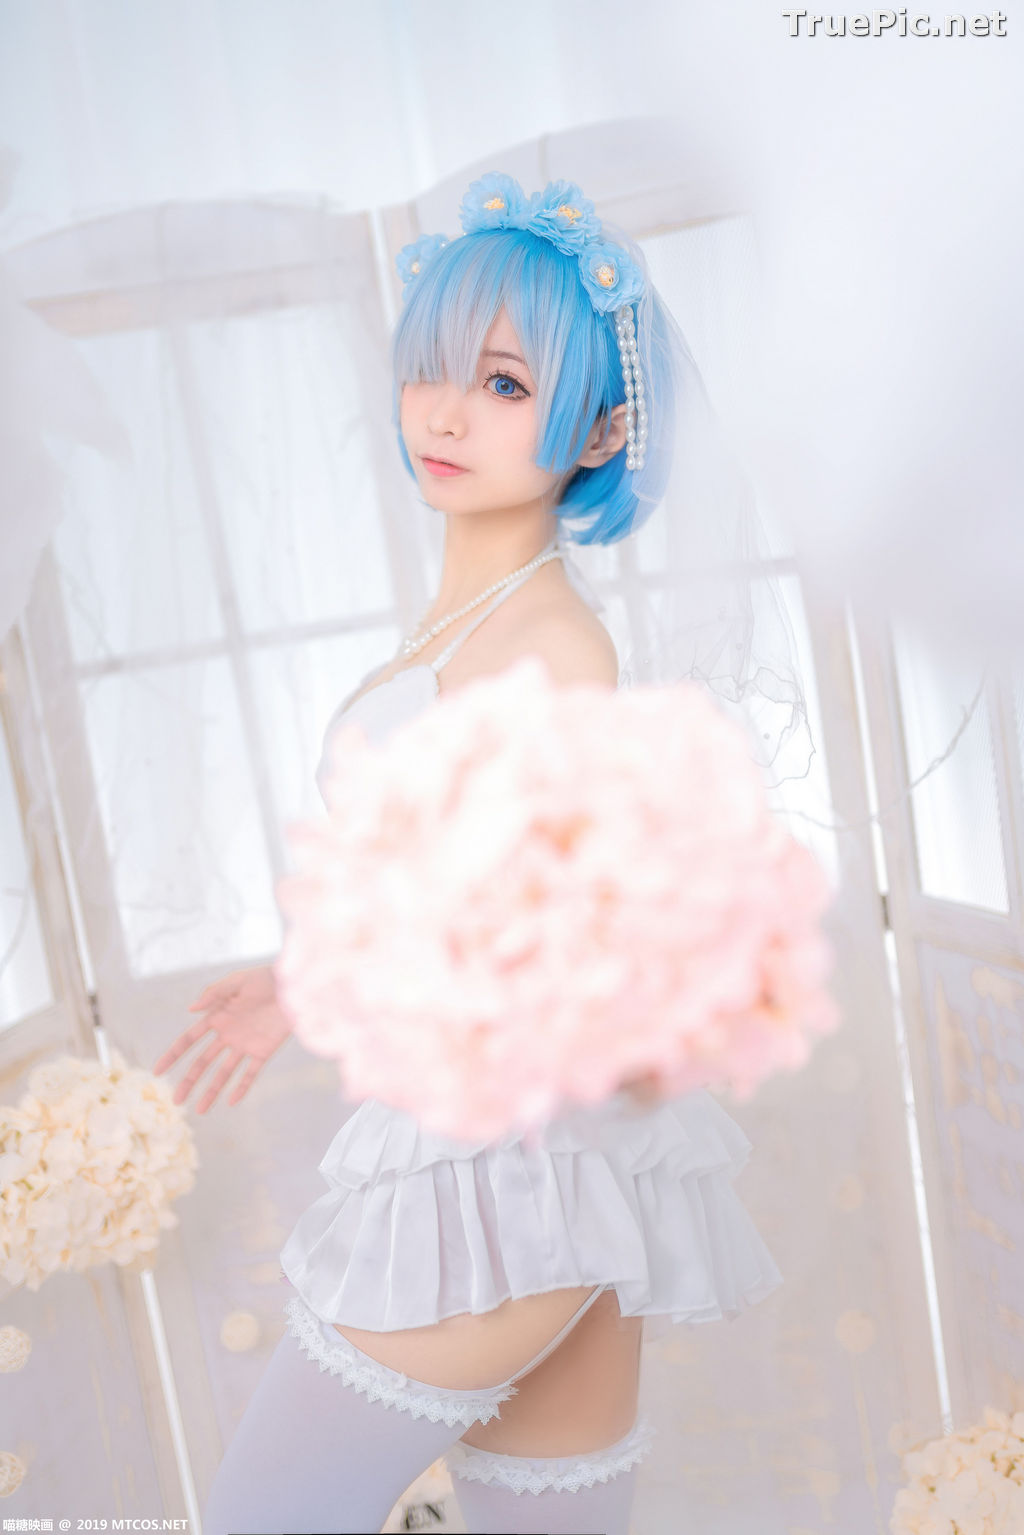 Image [MTCos] 喵糖映画 Vol.029 – Chinese Cute Model – Bride Rem Cosplay - TruePic.net - Picture-1